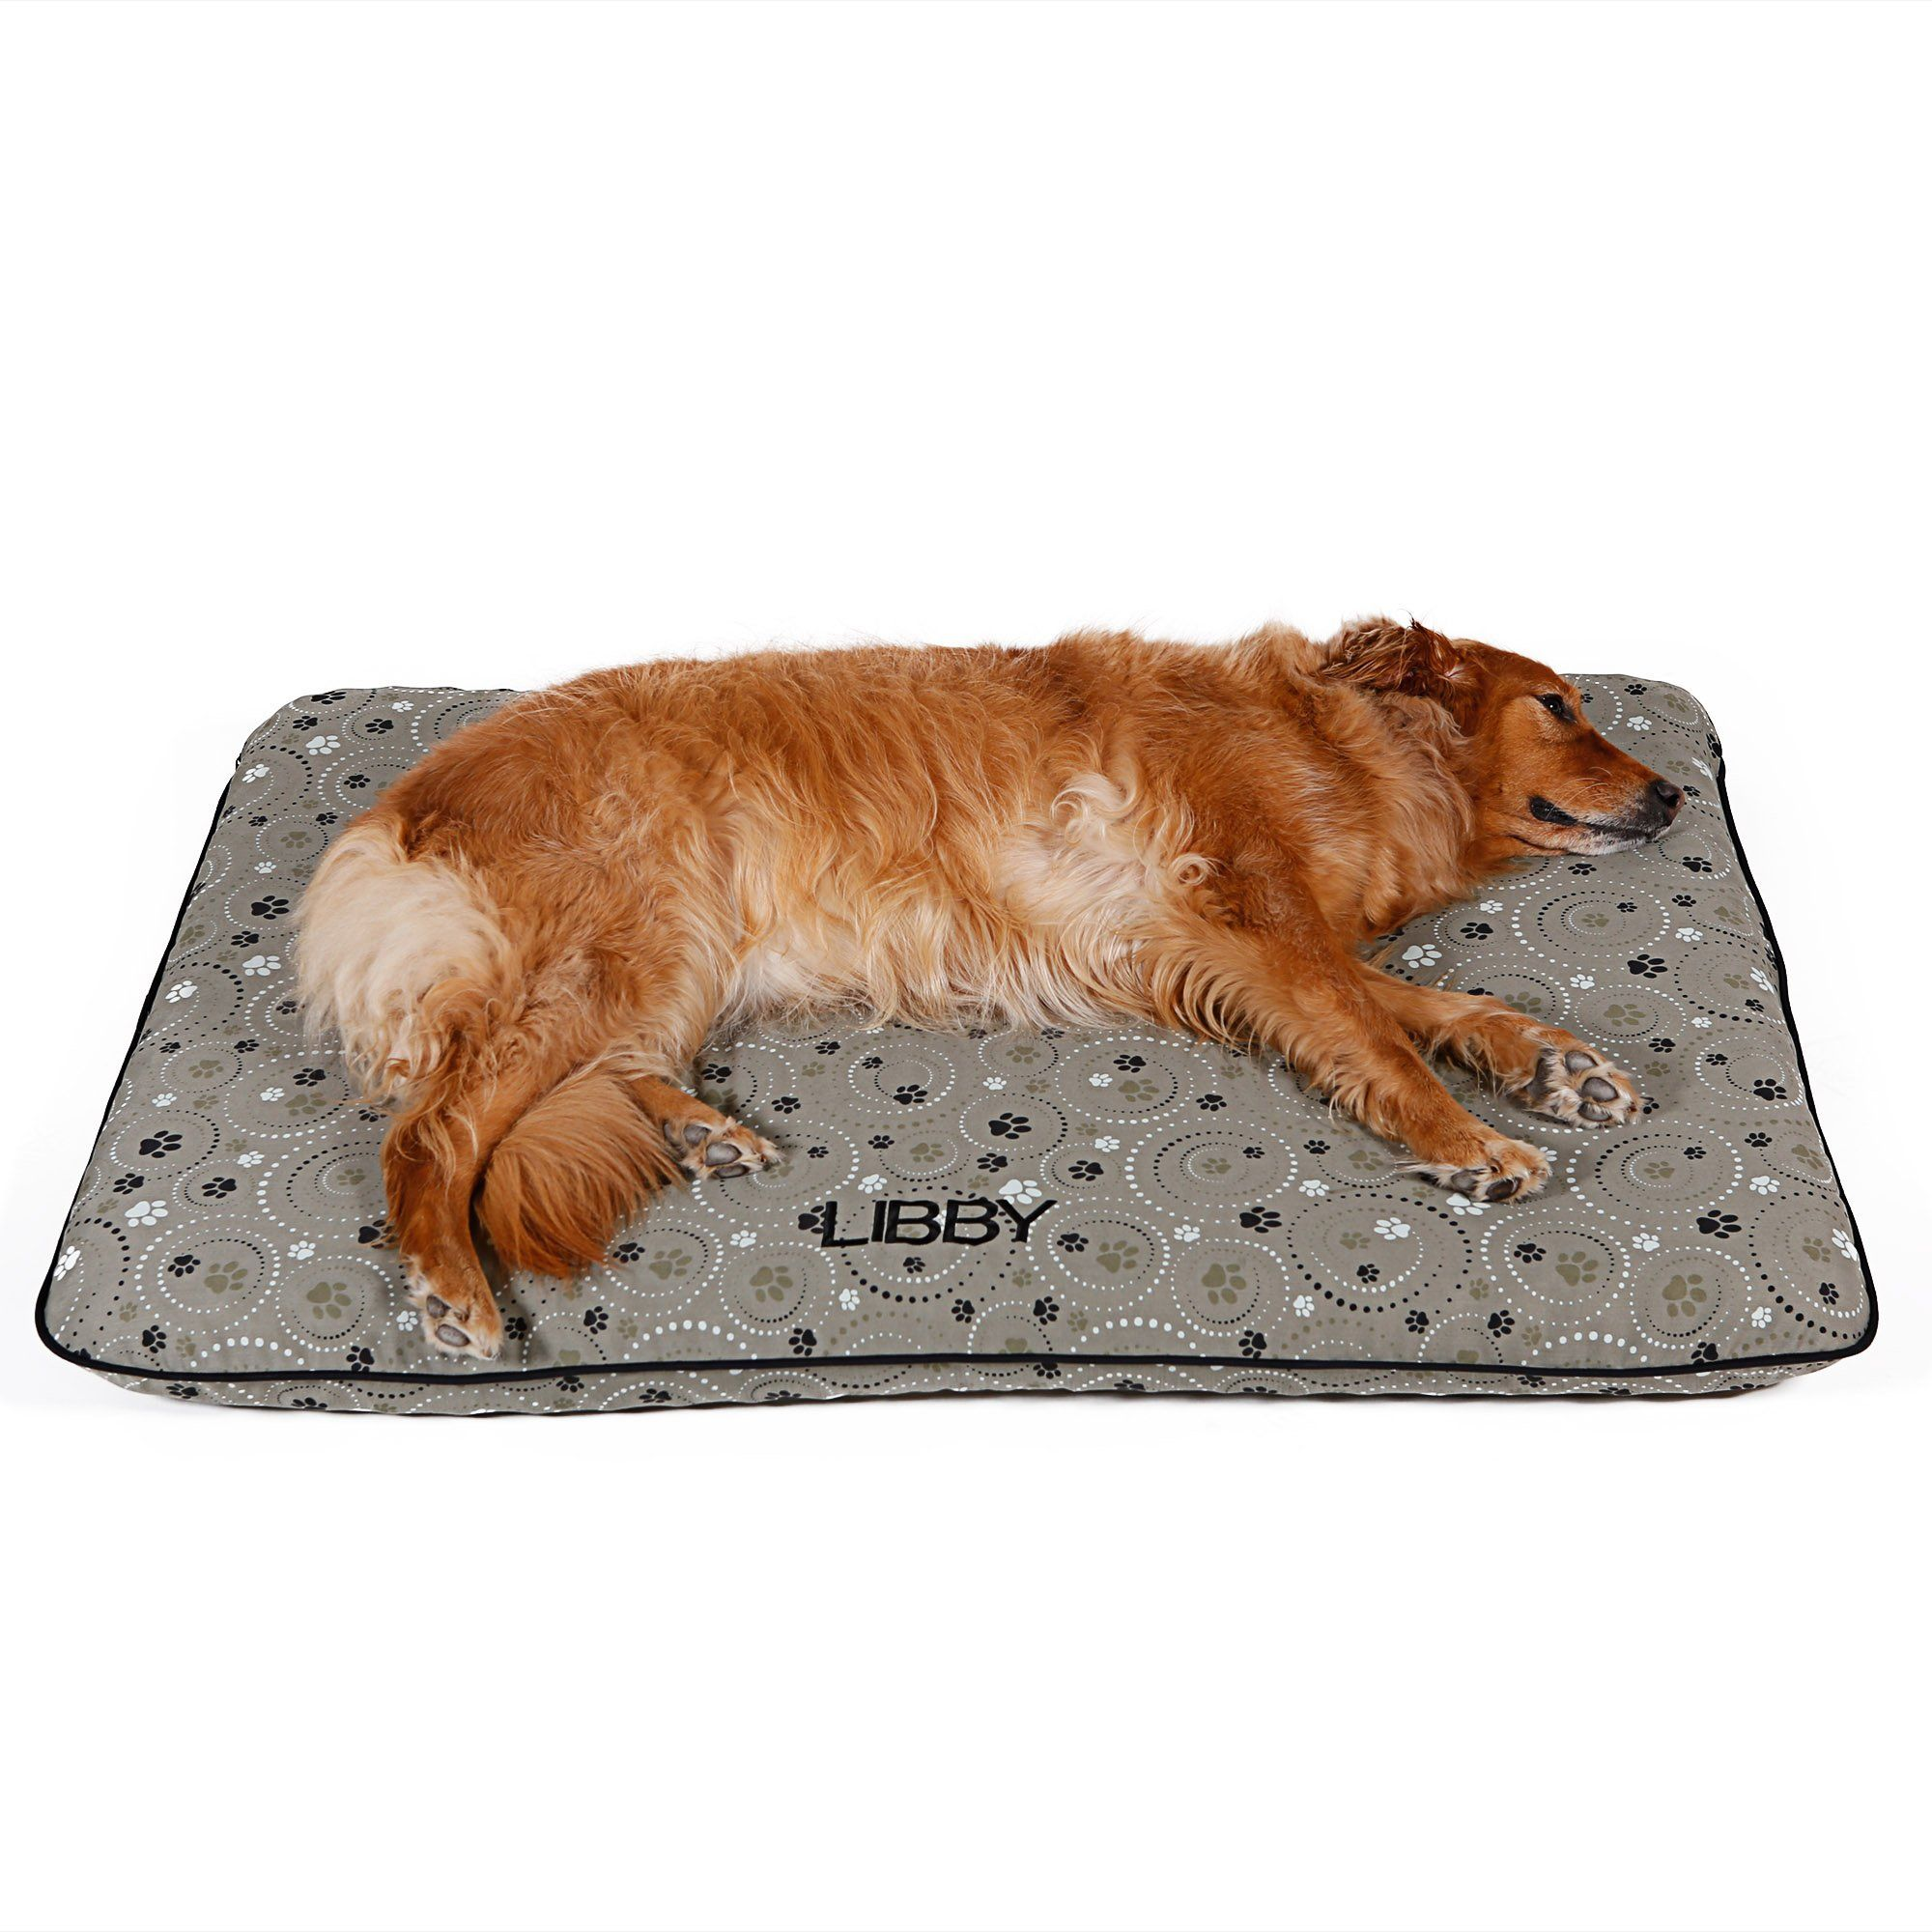 Dog Beds Bedding Best Large Small Dog Beds On Sale Petco